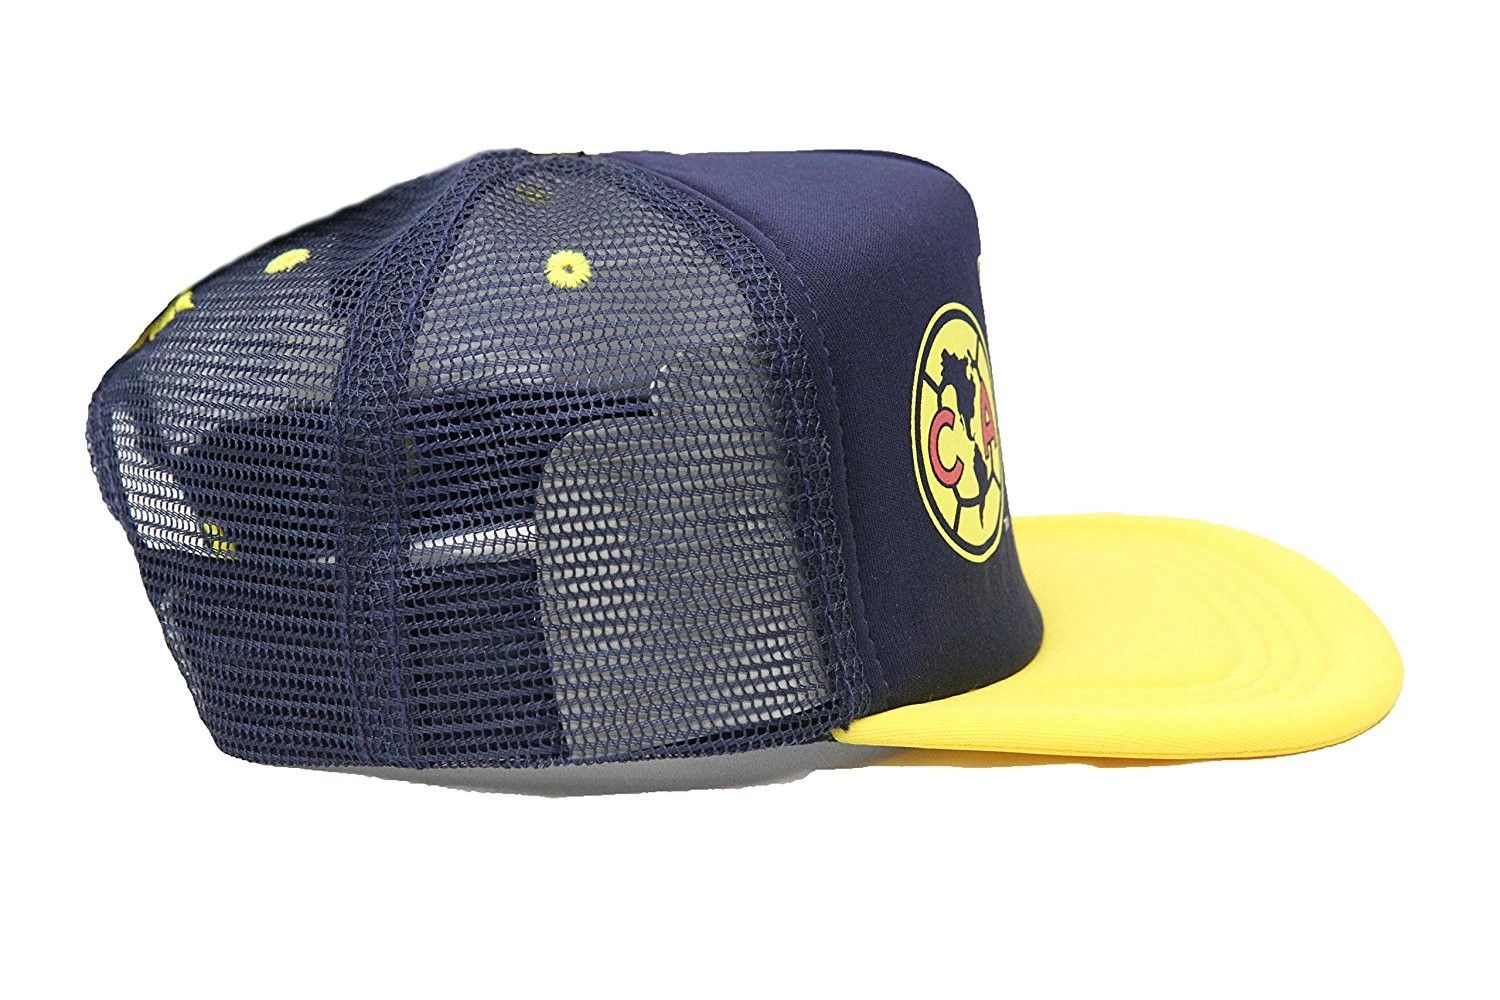 af607ad7b69f8d Hats & Caps, Men's Hats & Caps, Baseball Caps,Club America Flat Brim Hat  Cap Trucker Style C5A03 - Navy Blue - C212DI1GXC3 #caps #hats #style  #mensoutfits ...